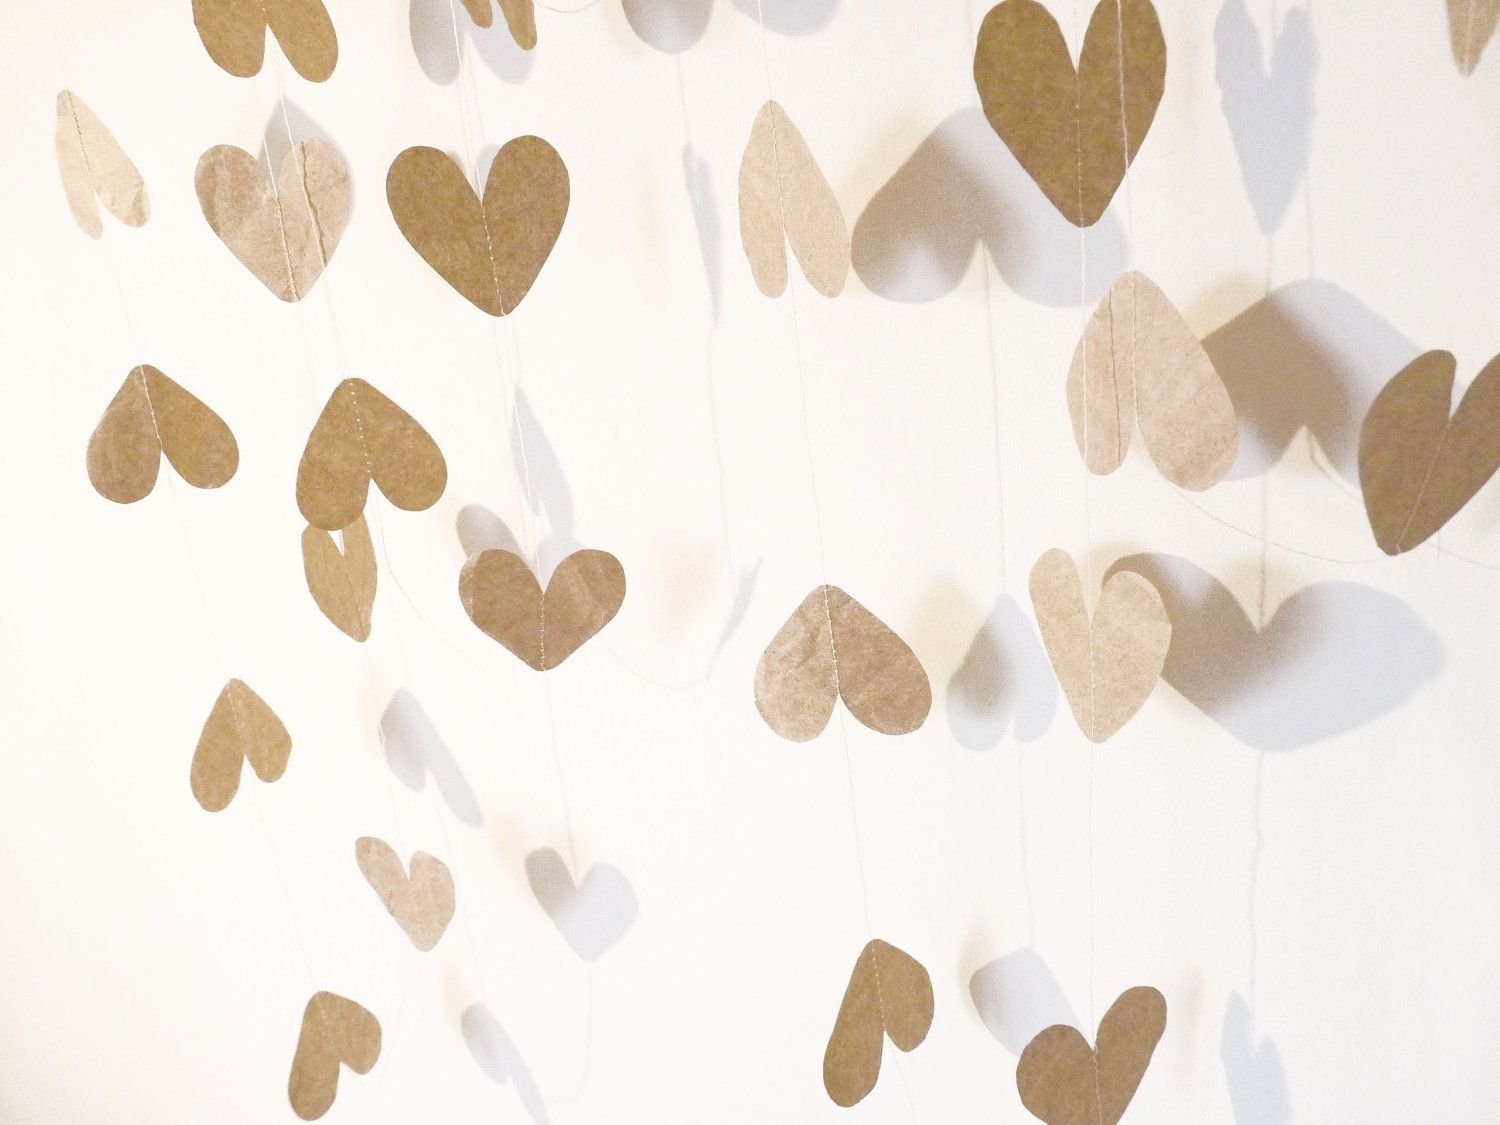 Recycled Brown Paper Heart Garland Christmas Decoration / First Anniversary Gift / New Years Party Decor  (Approx 2.68 meters / 8.7 feet)